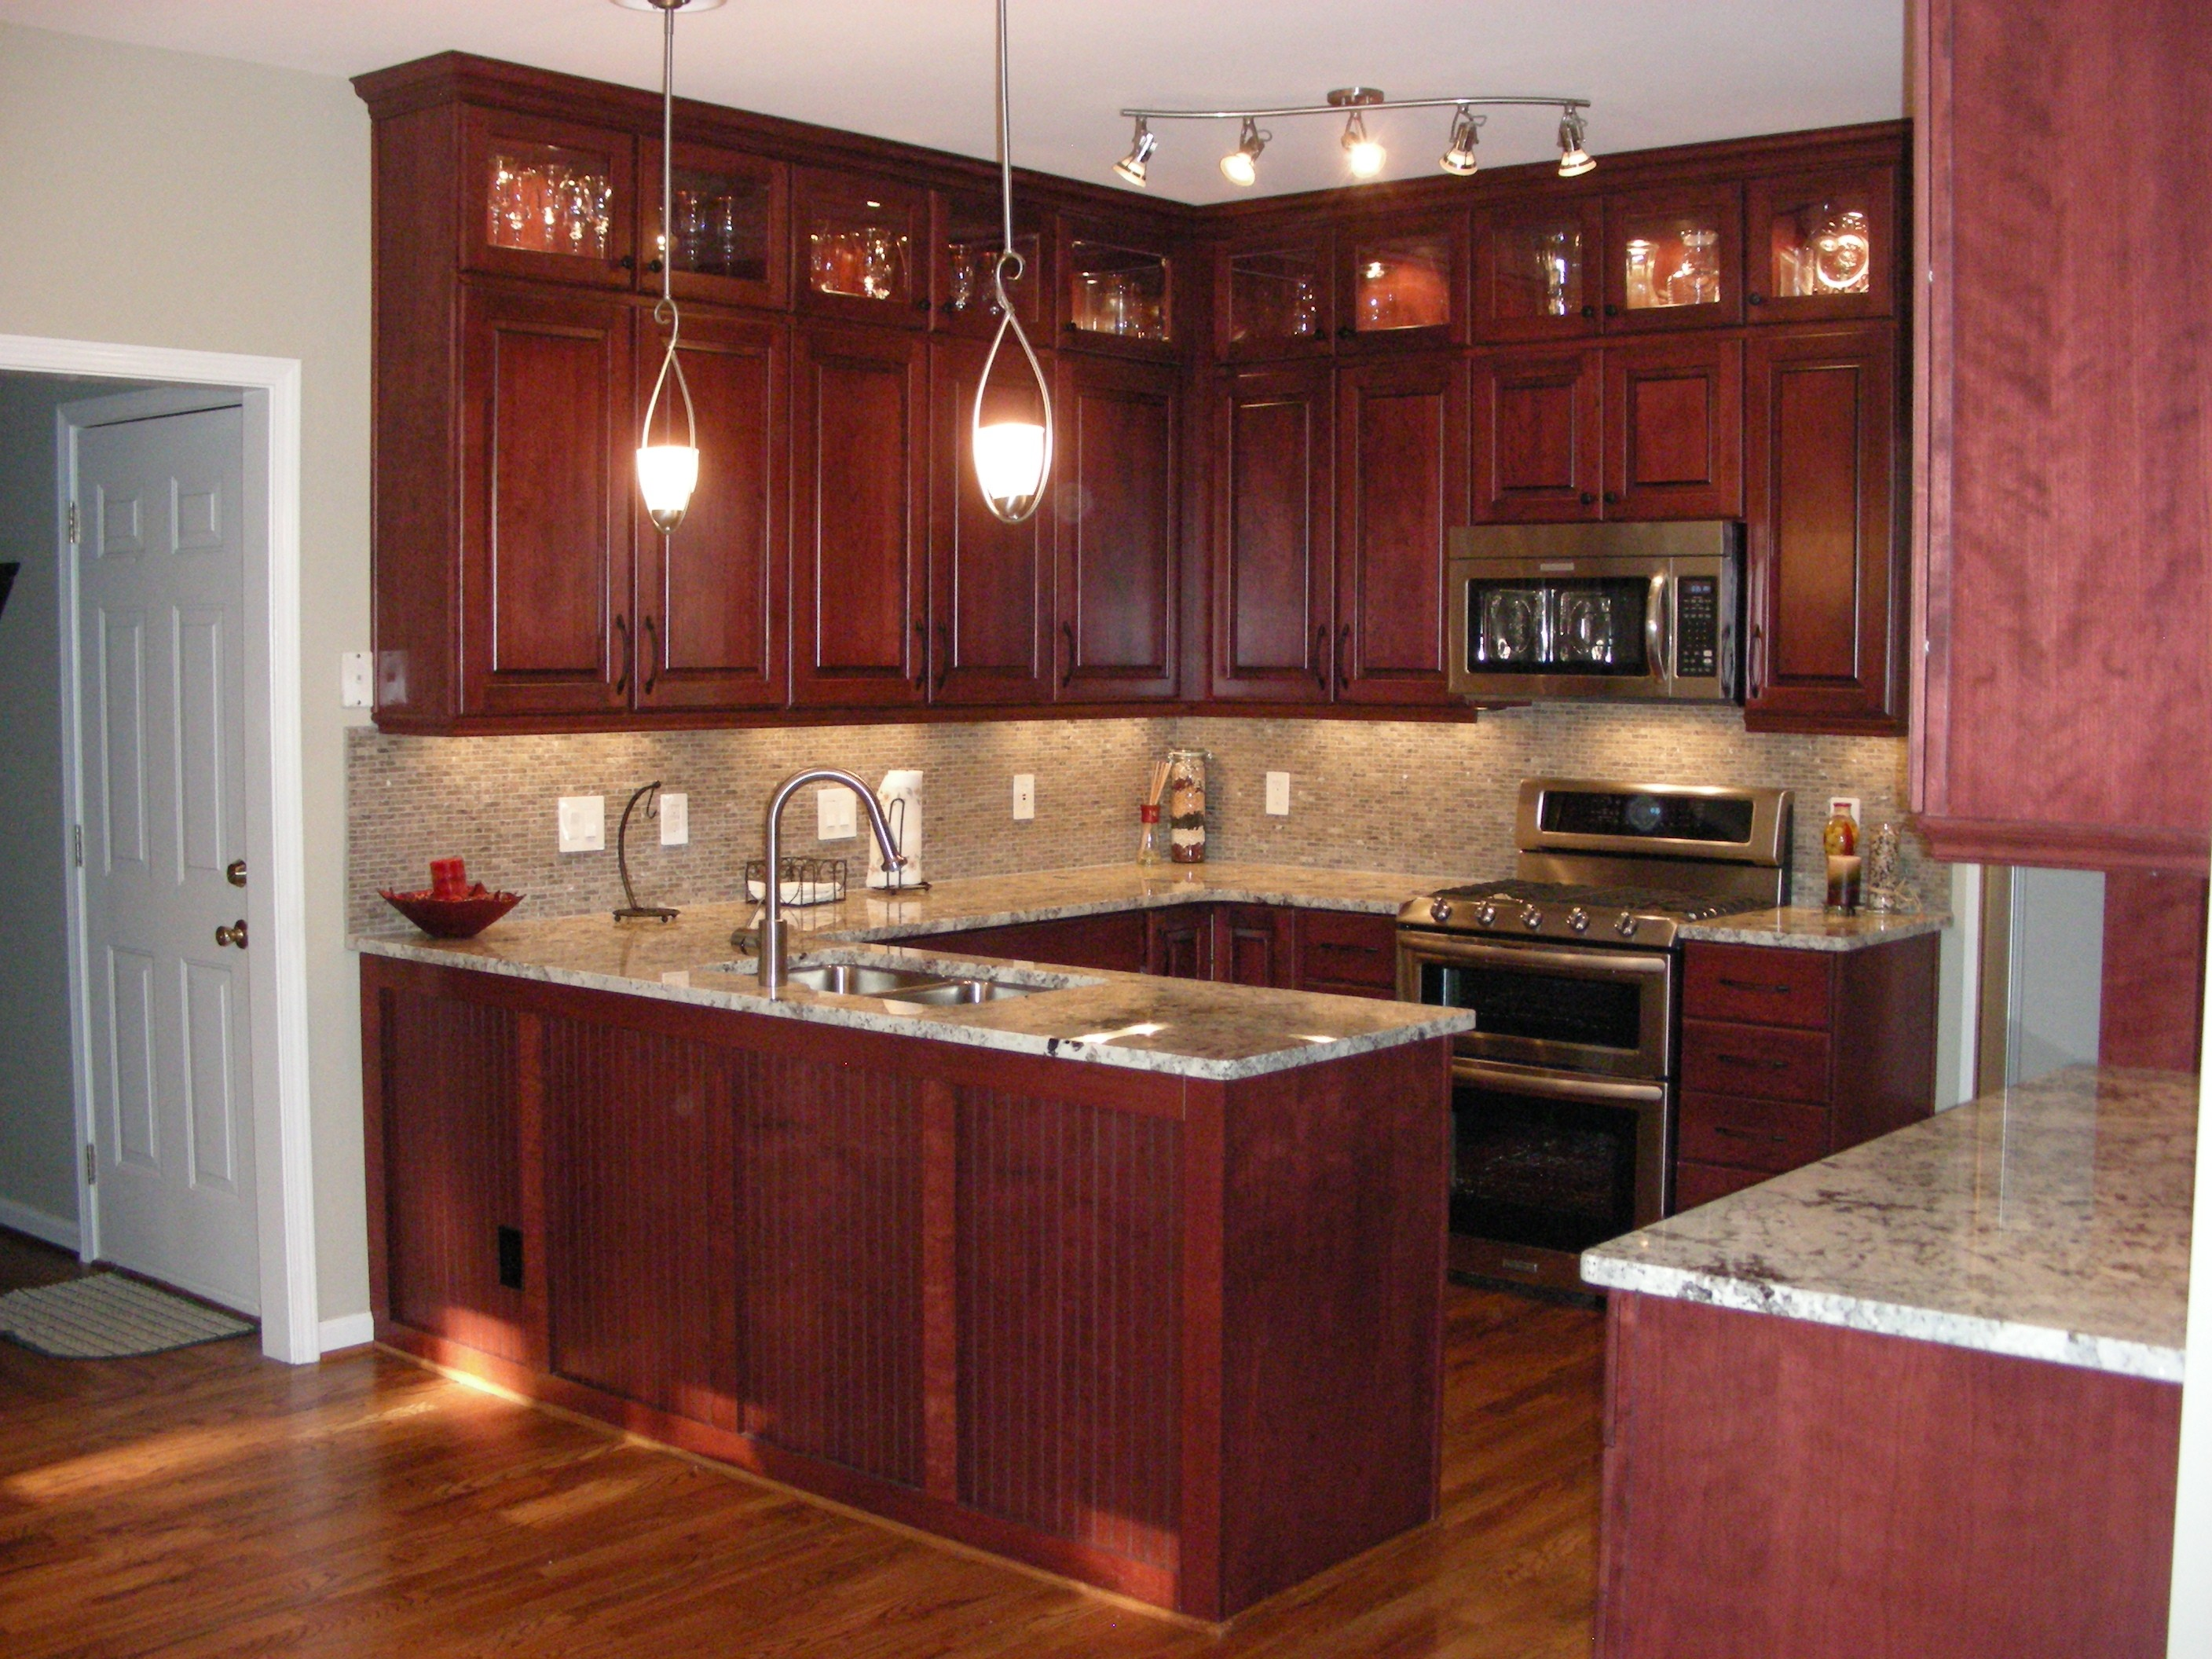 Kitchen Cabinet Color Ideas For Small Kitchens Kitchen Furniture Interior Paint Colors For Walls Designs